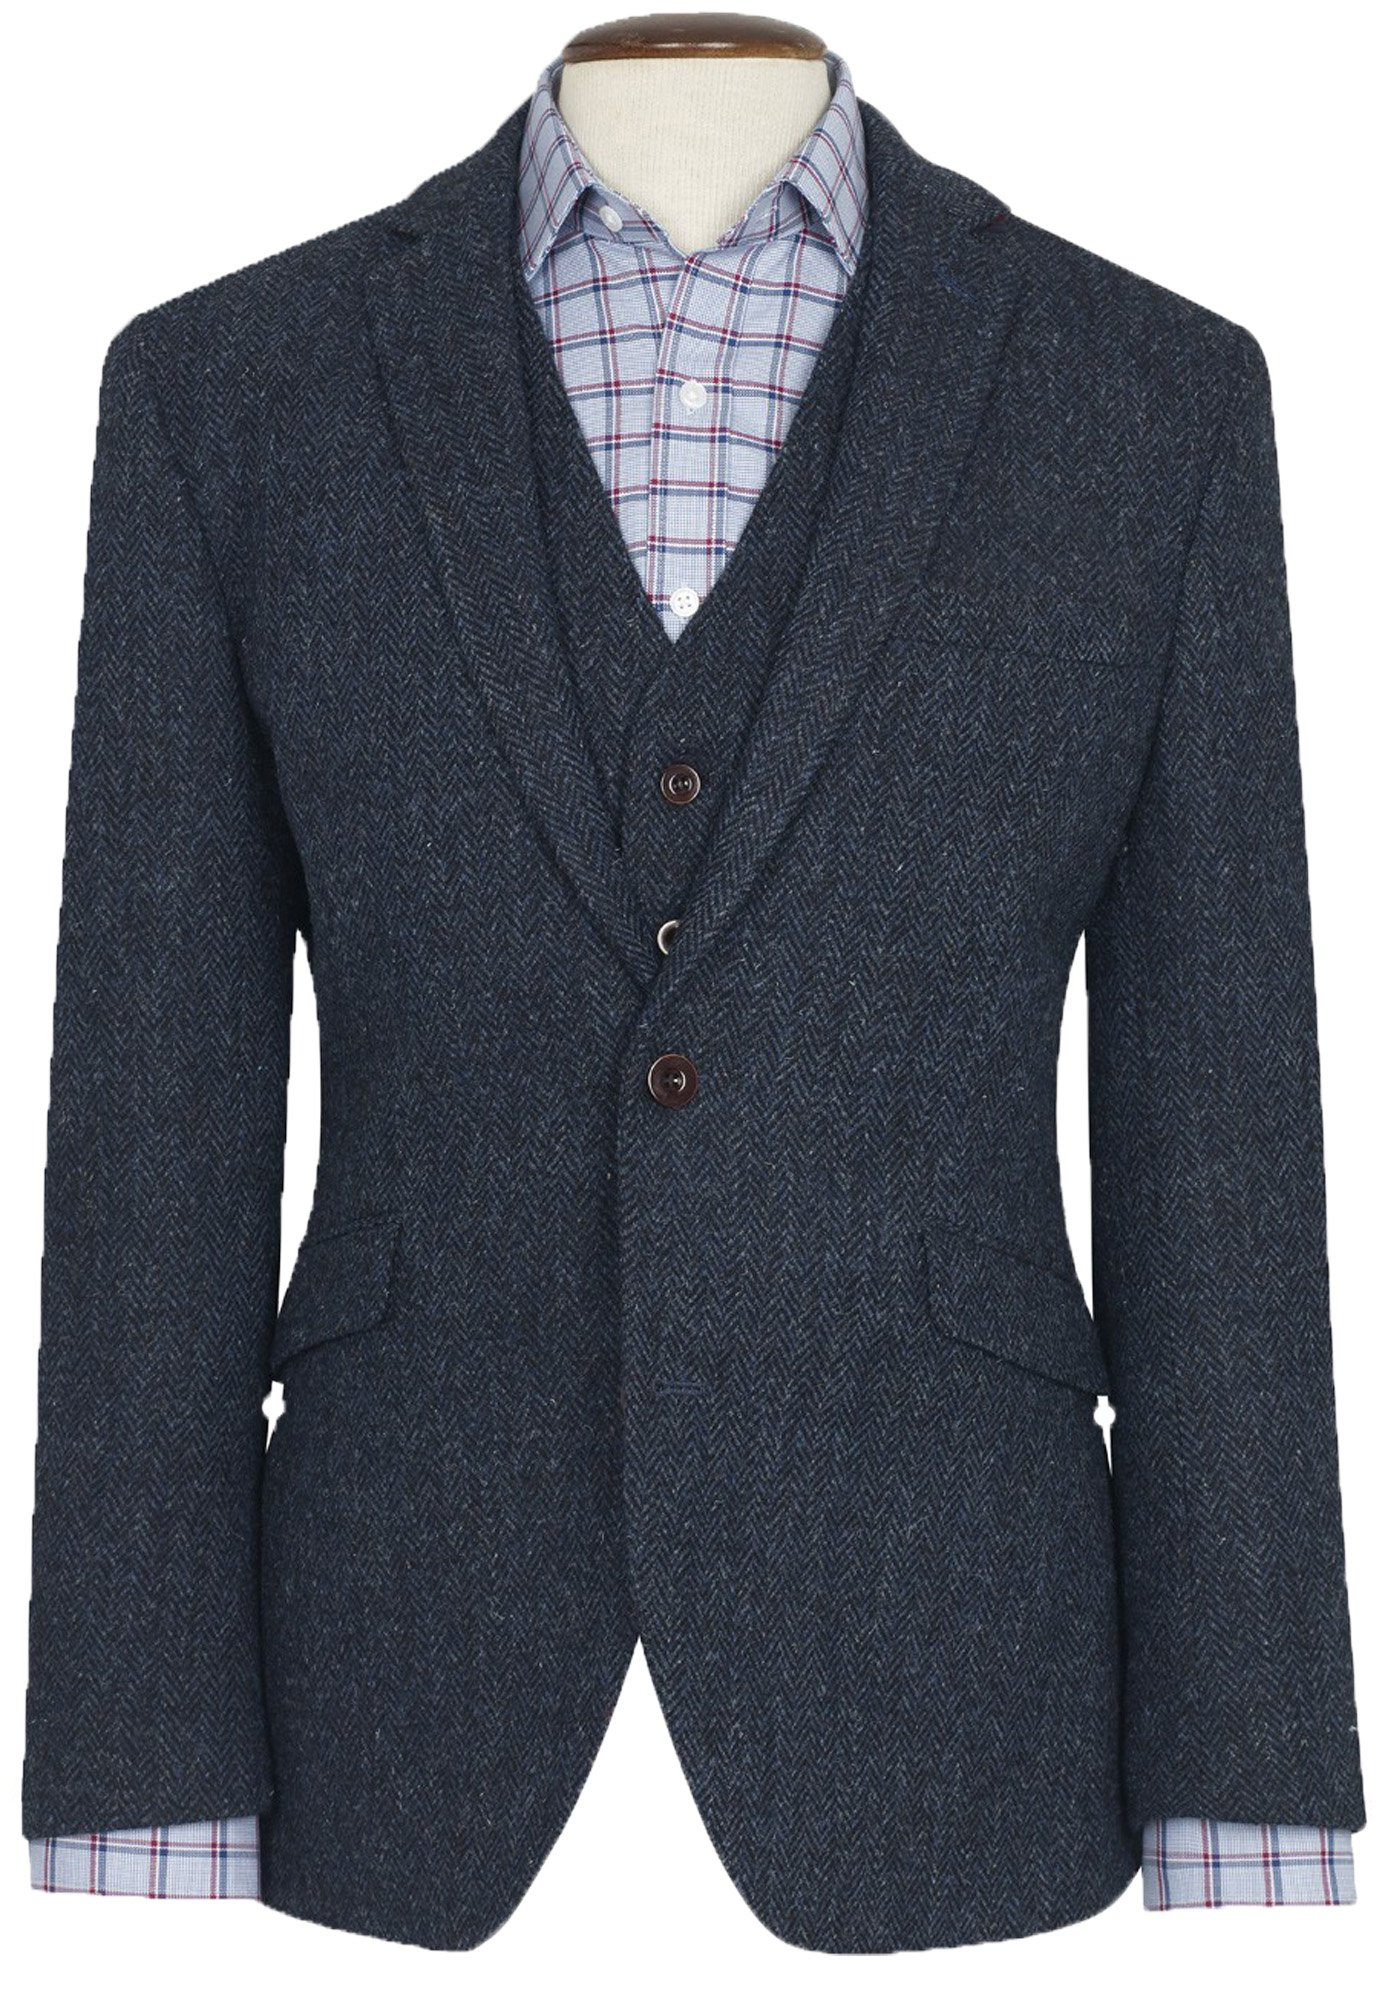 THE FINE SWINE Harris Tweed Coats by (Midnight Blue Stranraer, 40L)